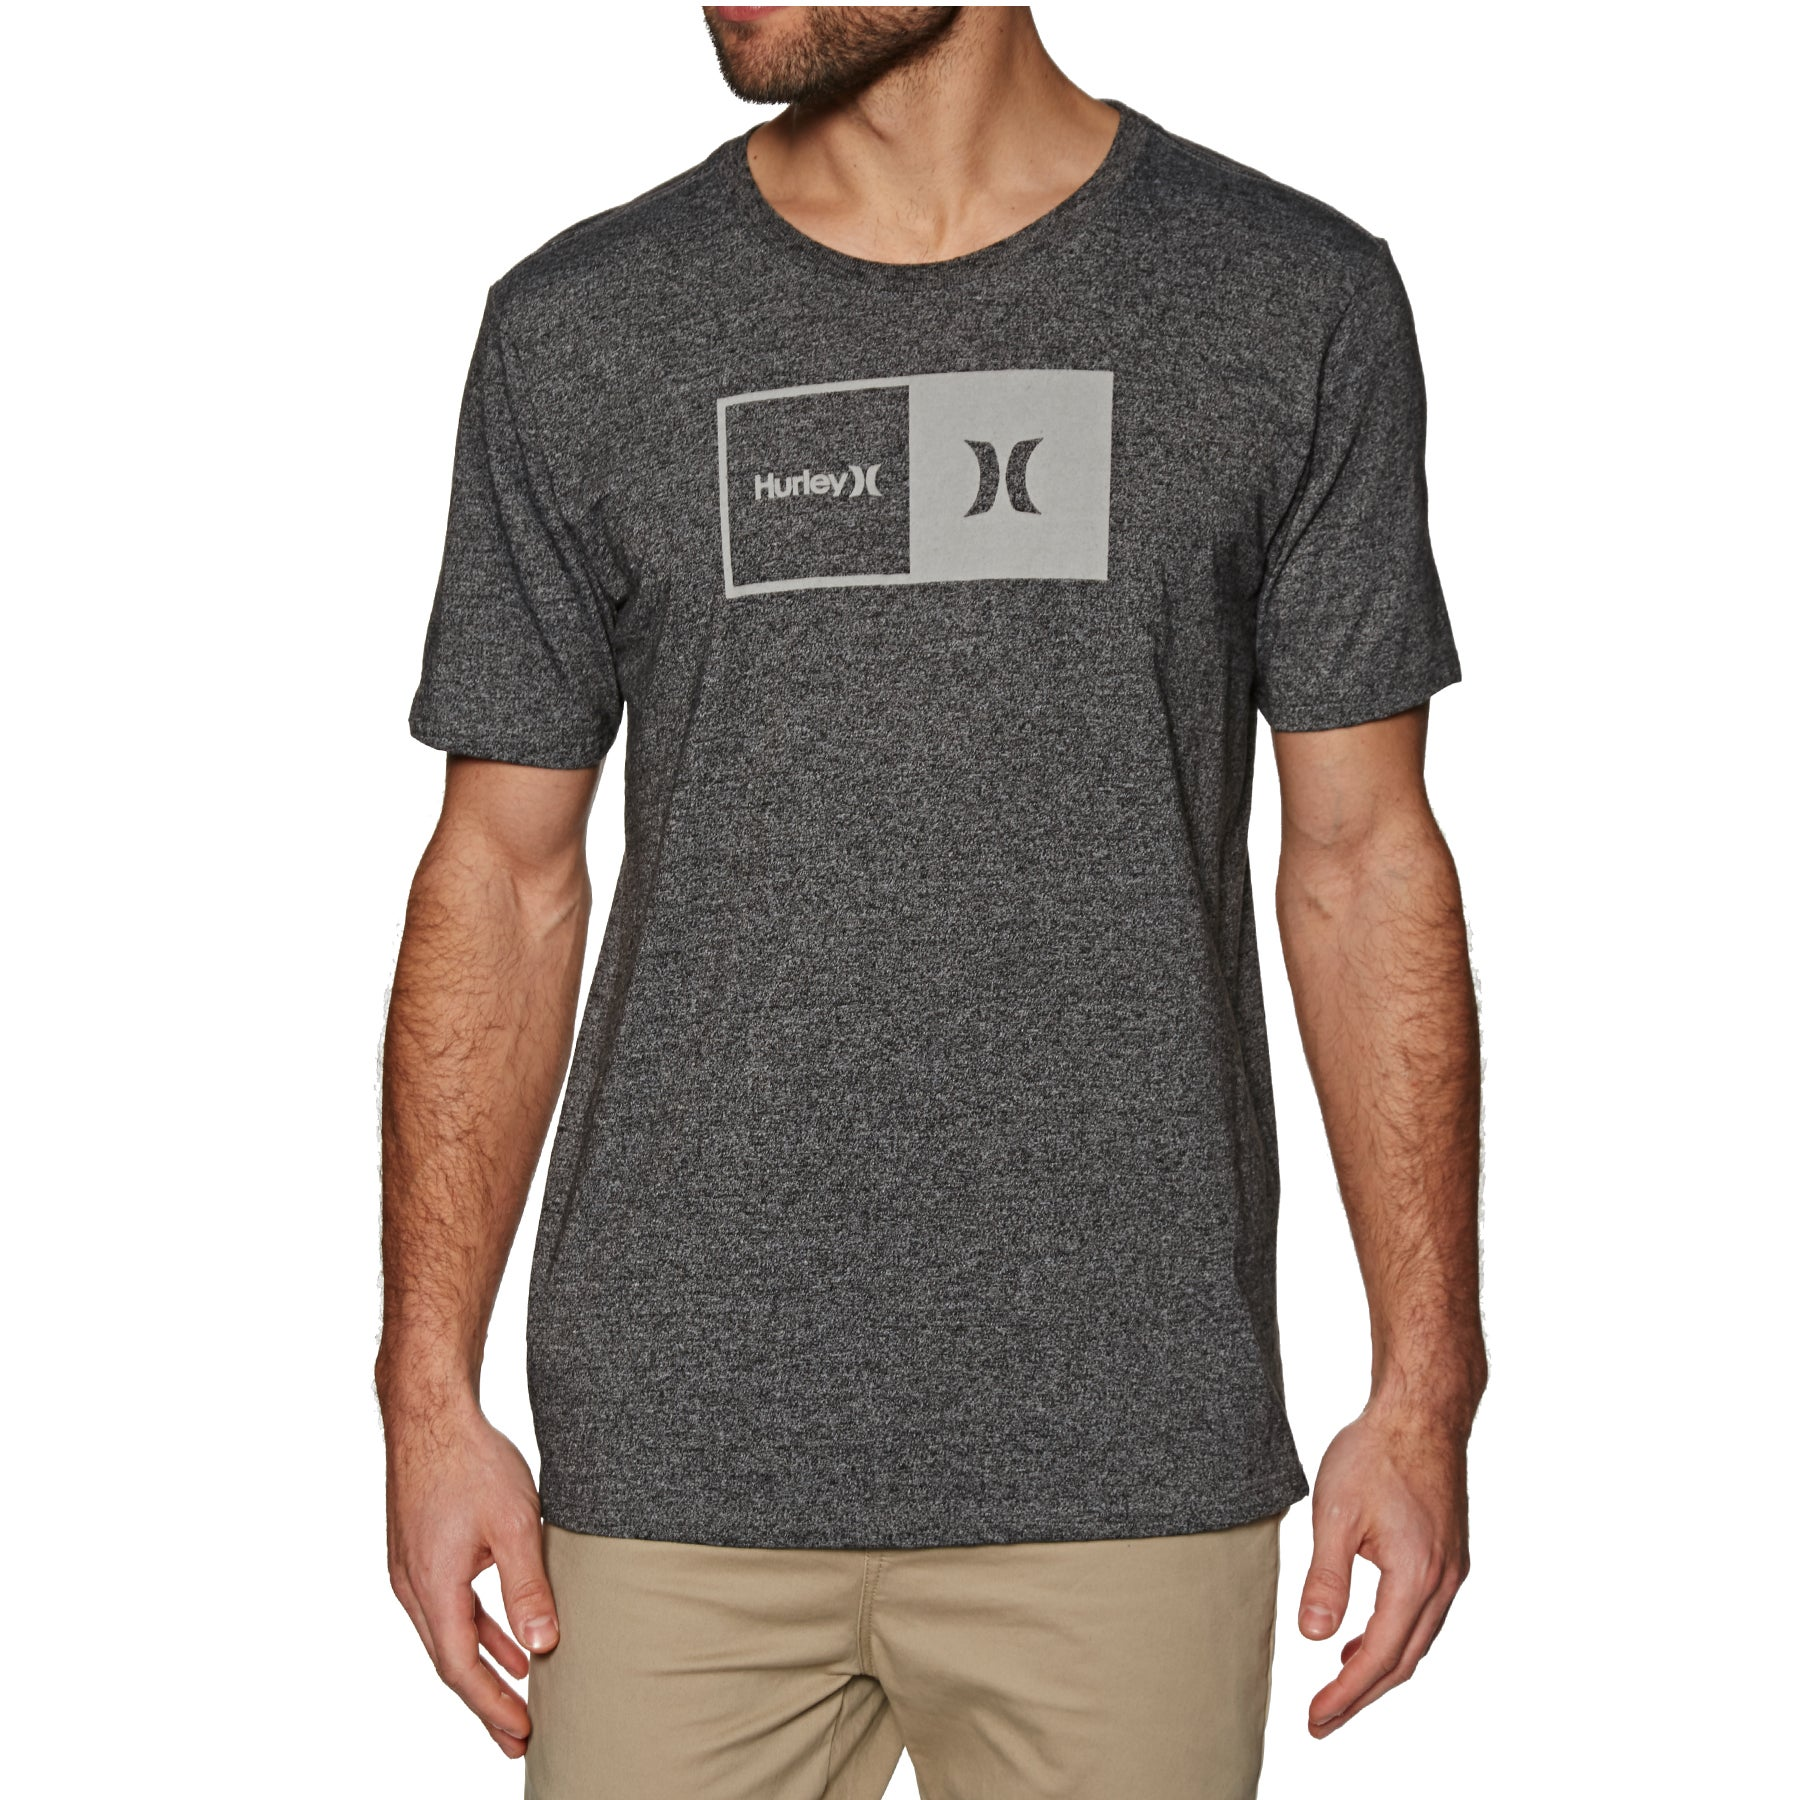 c8cf8513ead Hurley Siro Natural Short Sleeve T-Shirt available from Surfdome